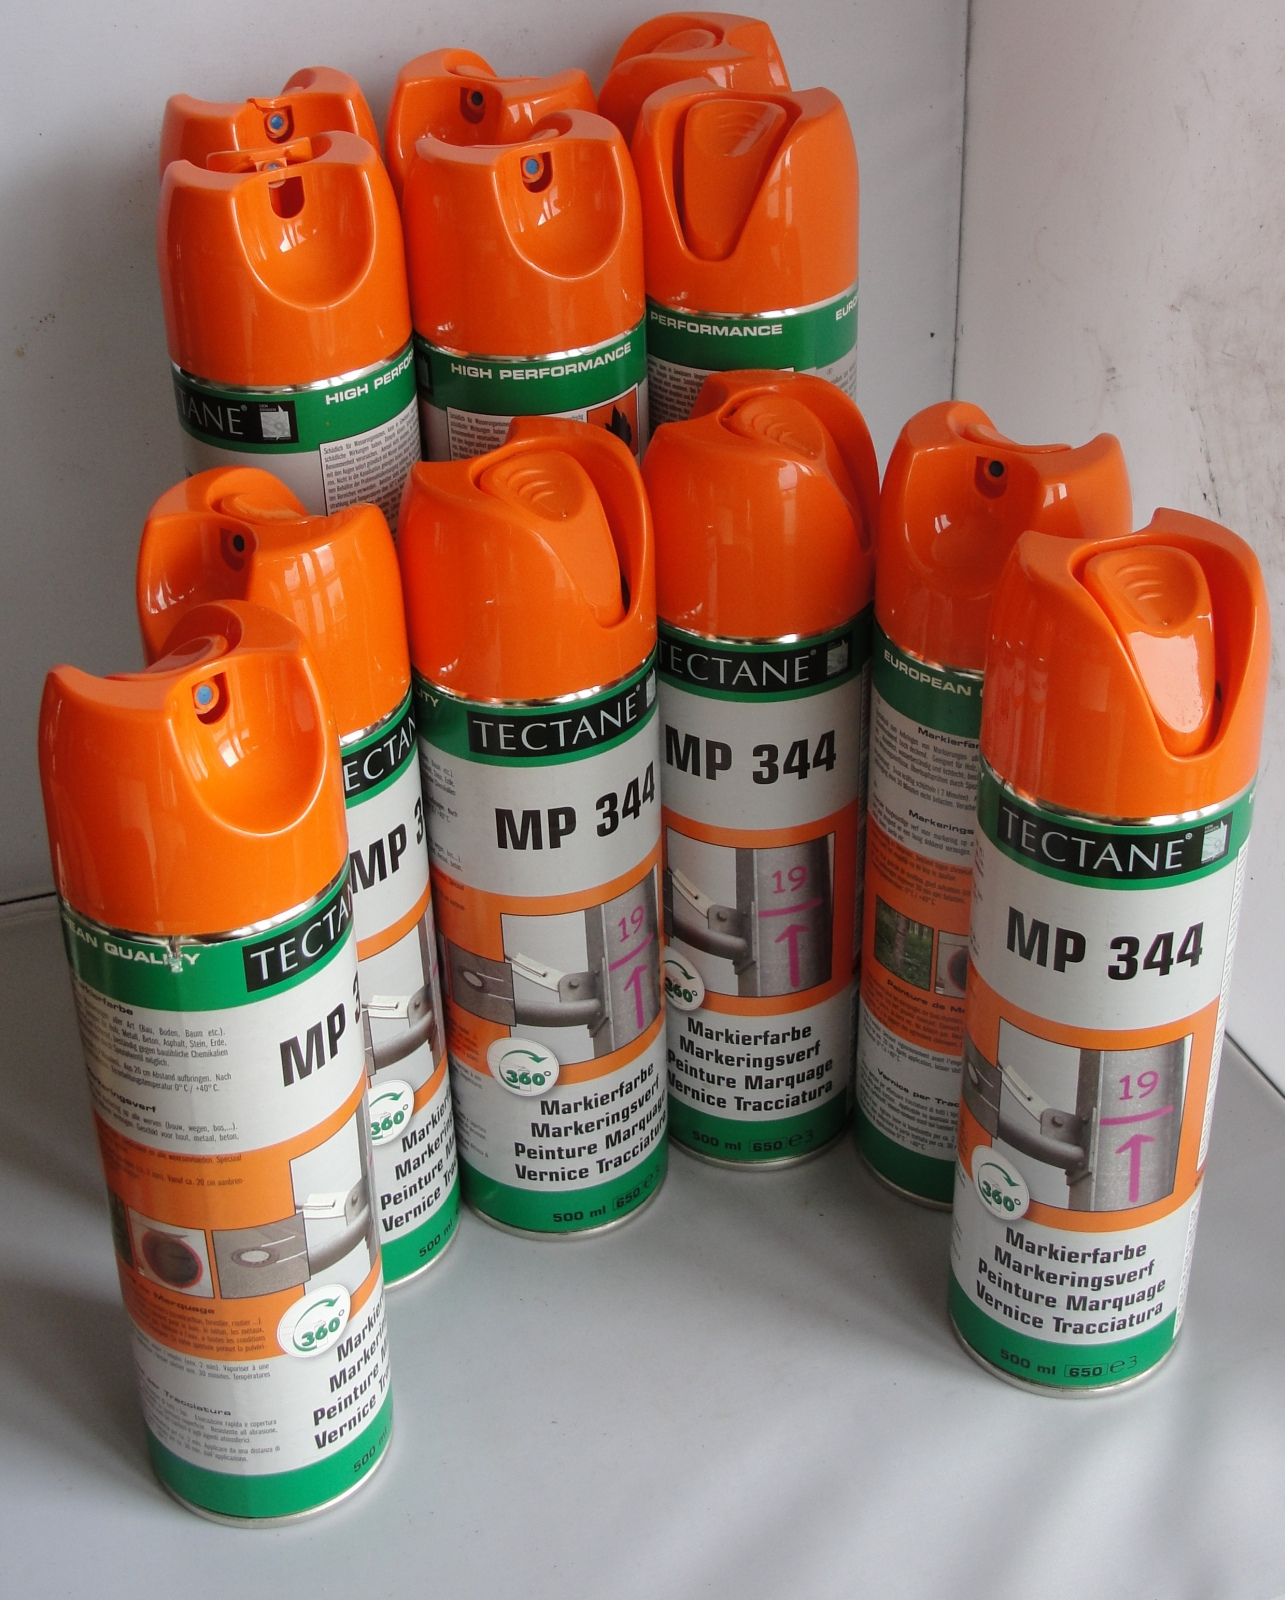 12x Tectane MP344 Markierfarbe Orange 500 ml Dosen Markierungsspray Forstfarbe